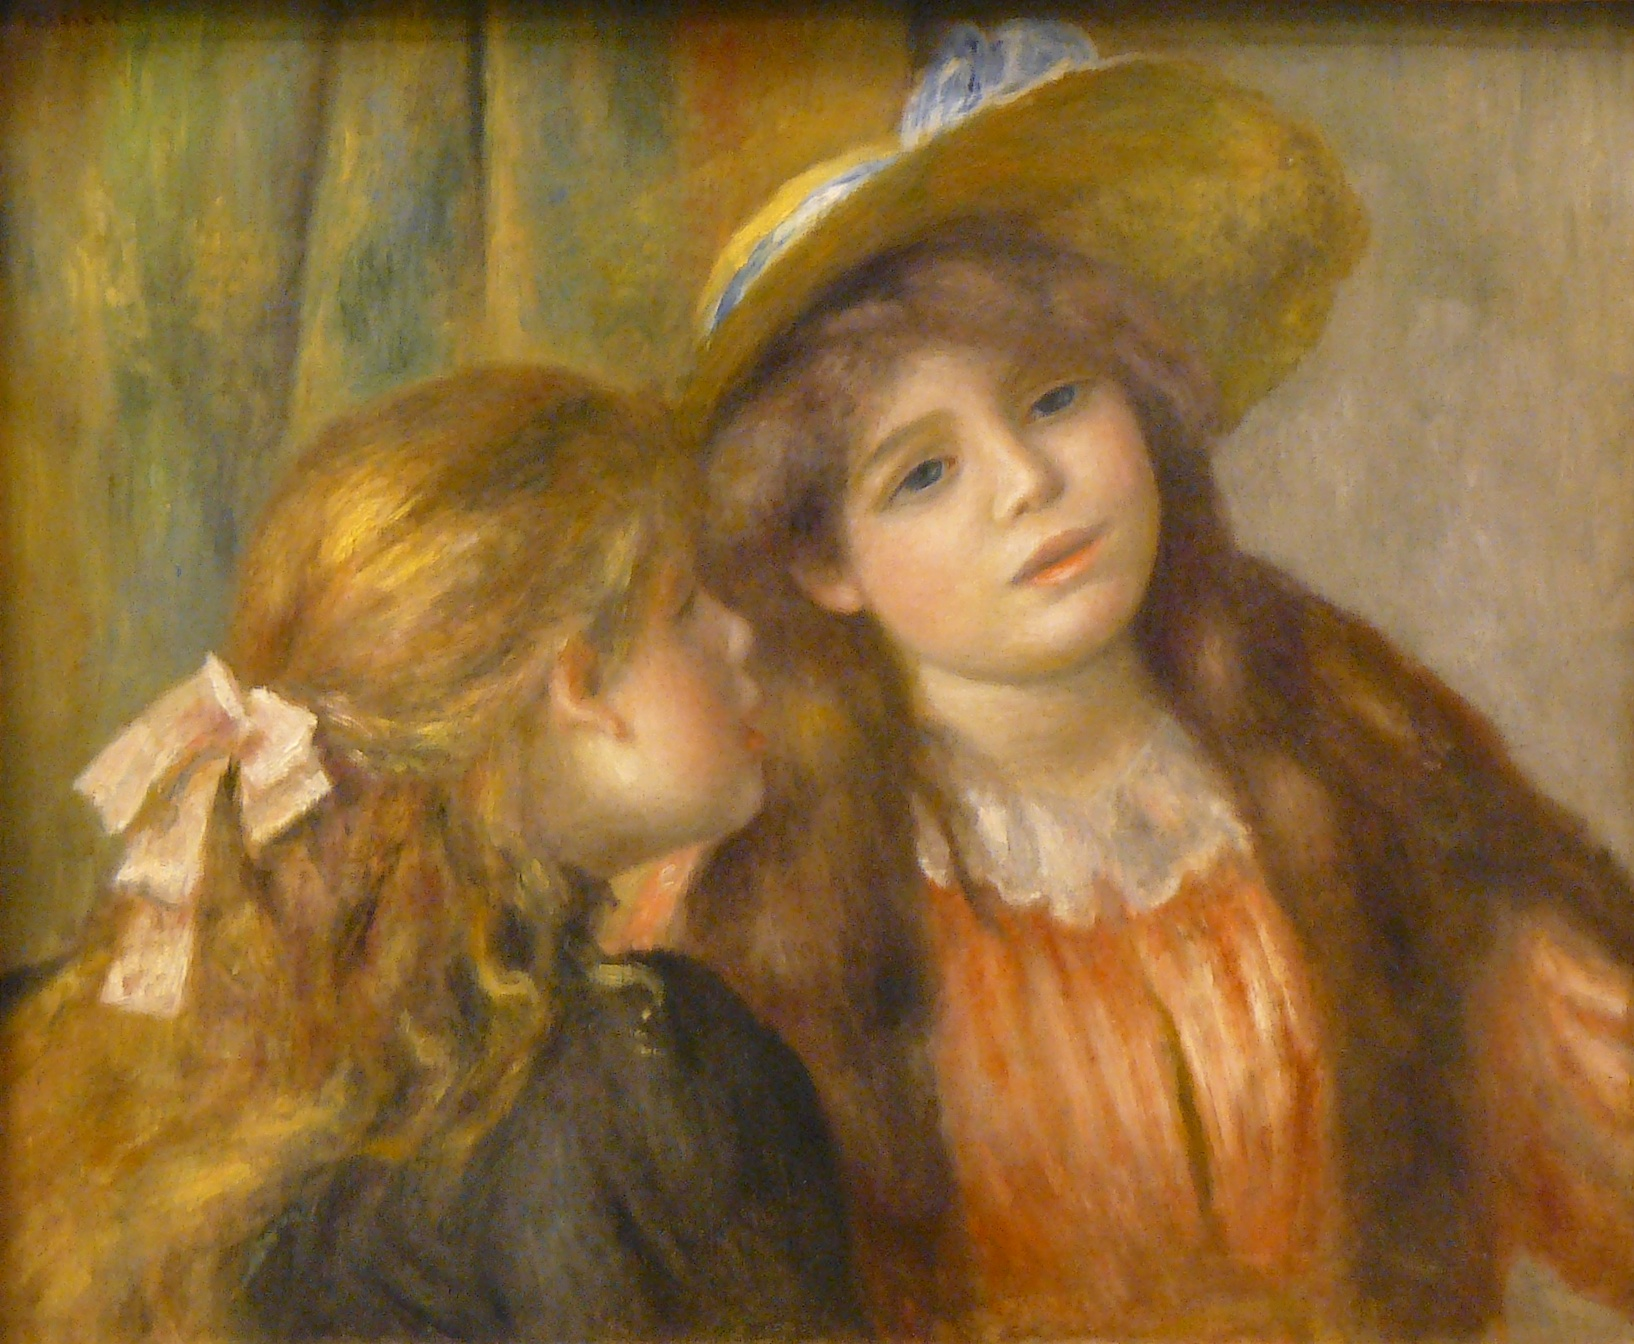 http://upload.wikimedia.org/wikipedia/commons/b/b3/Renoir_2_fillettes_1890-1892.jpg